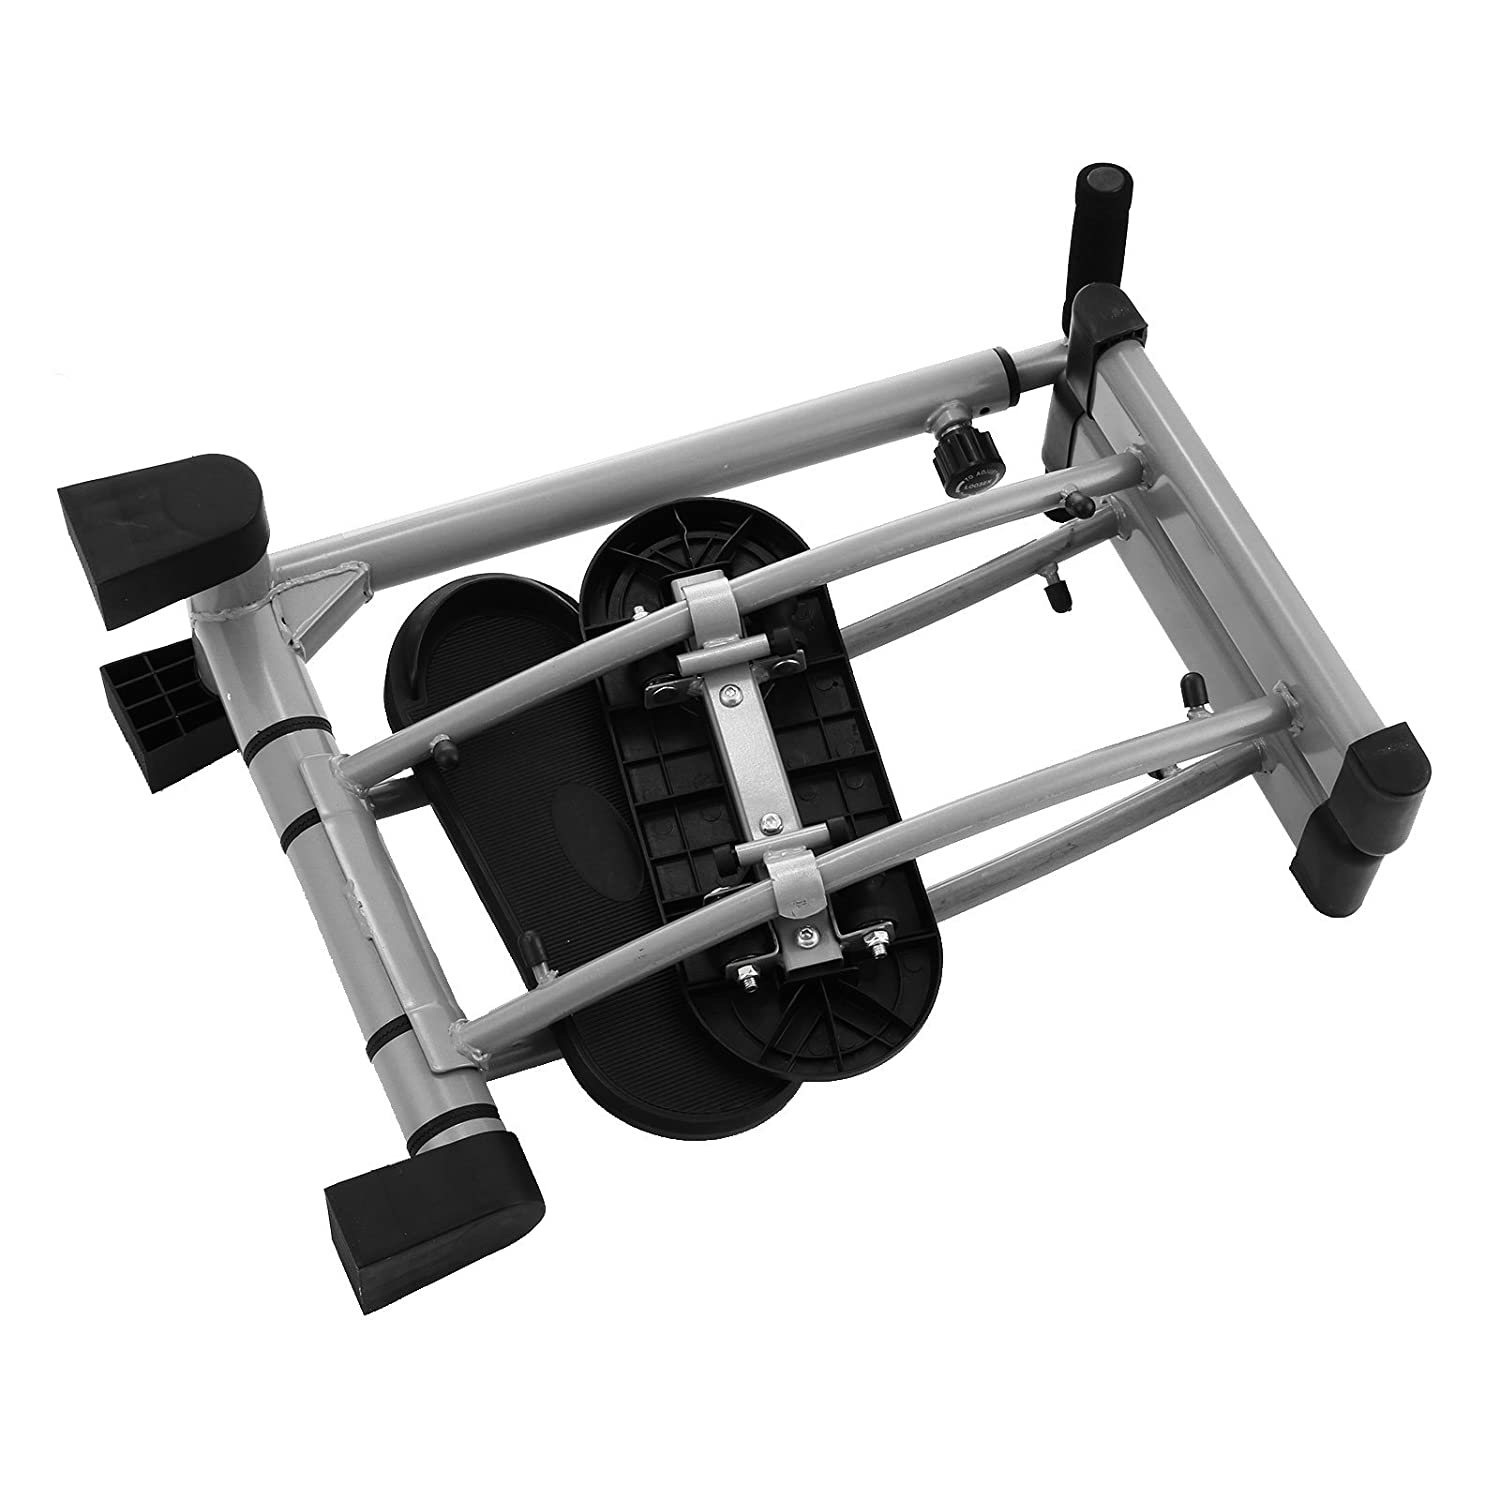 Happybuy Thigh Glider Machine Thighs Exercise Fitness Foldable Leg Exerciser with Adjustable Handle Fitness Stepper Gym Trainer Workout Machine